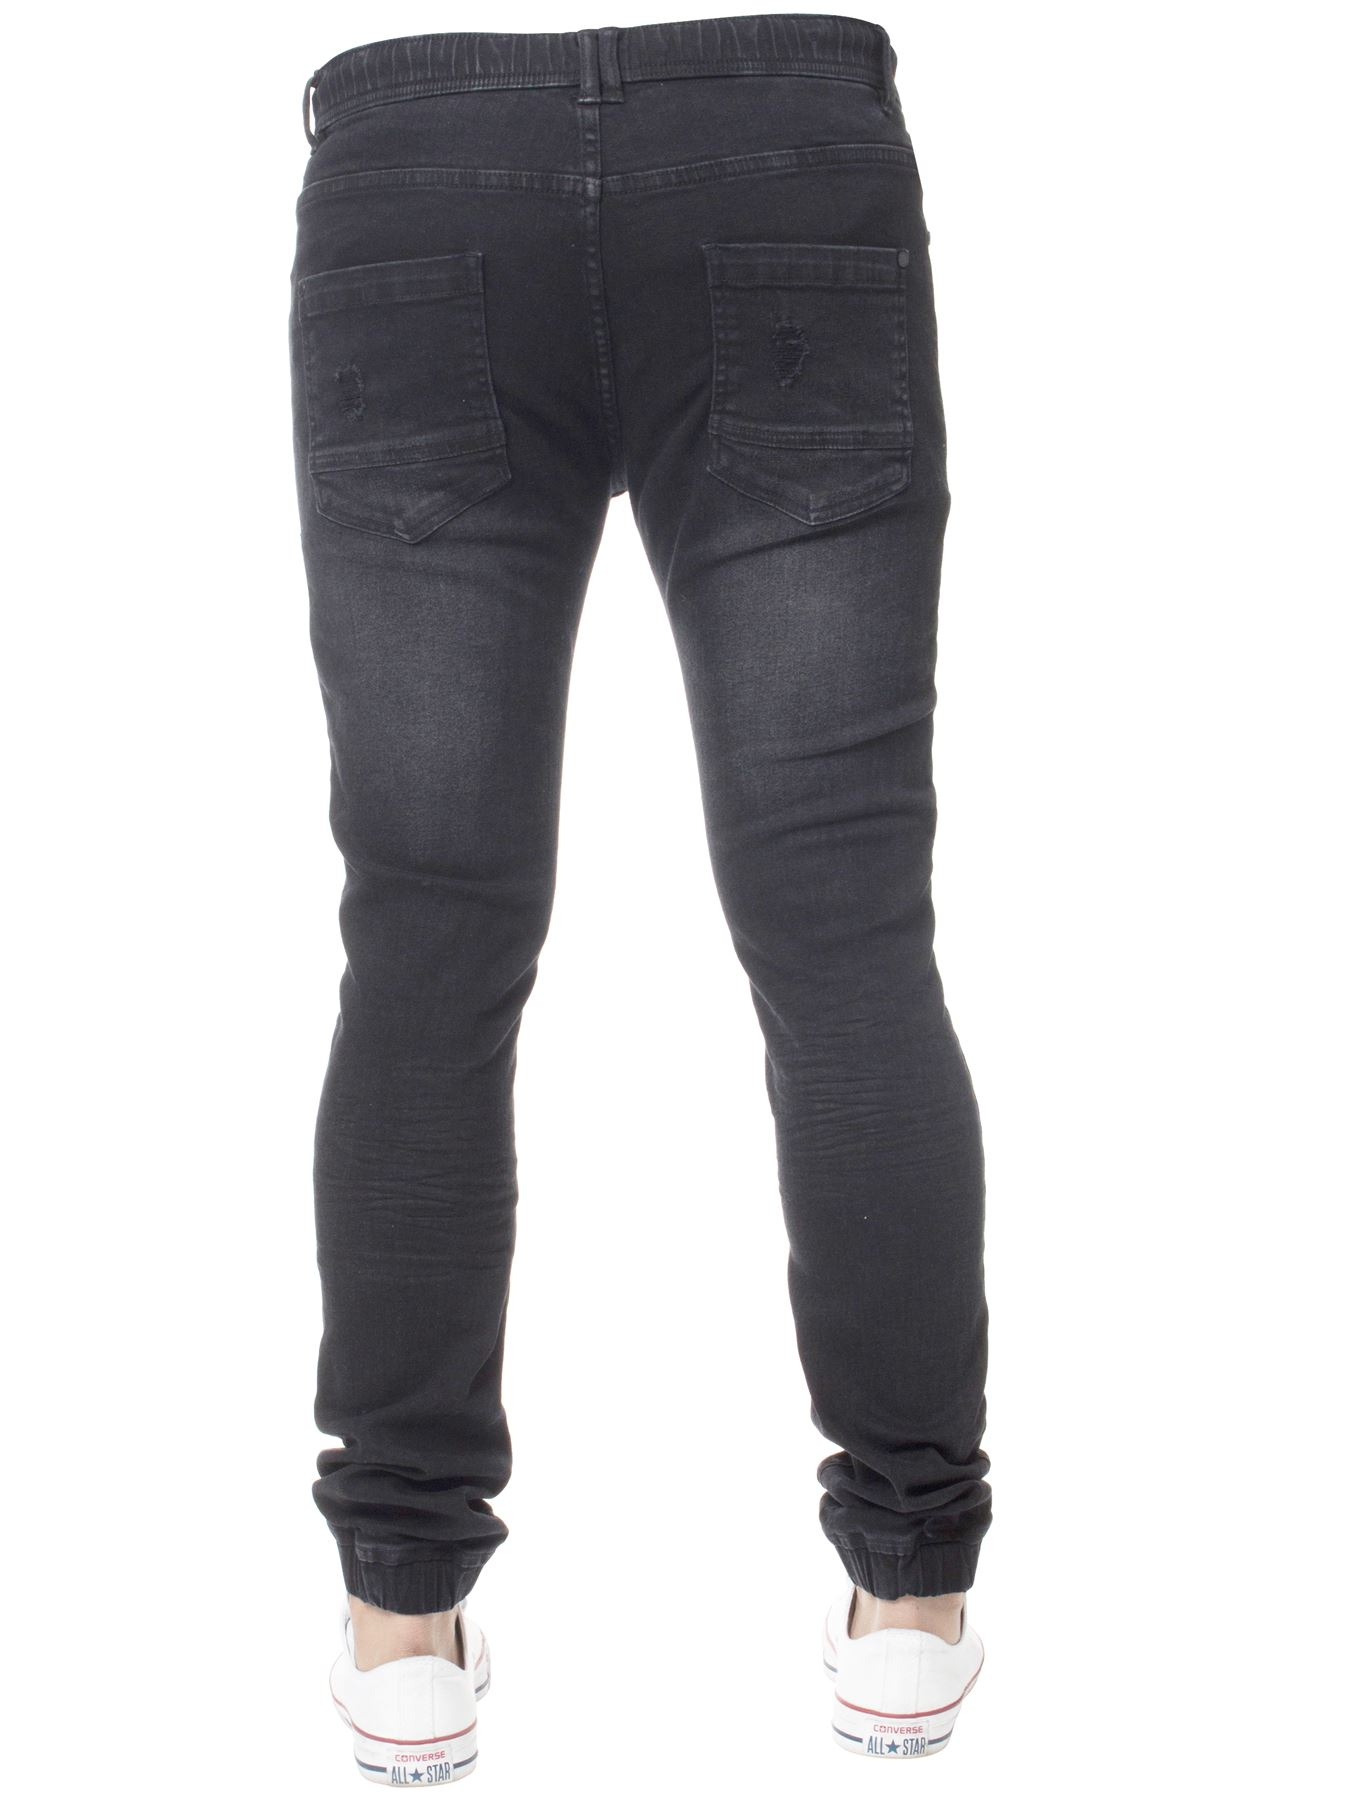 New Enzo Mens Cuffed Jeans Stretch Fit Ripped Designer Denim Jogger Joger Riped